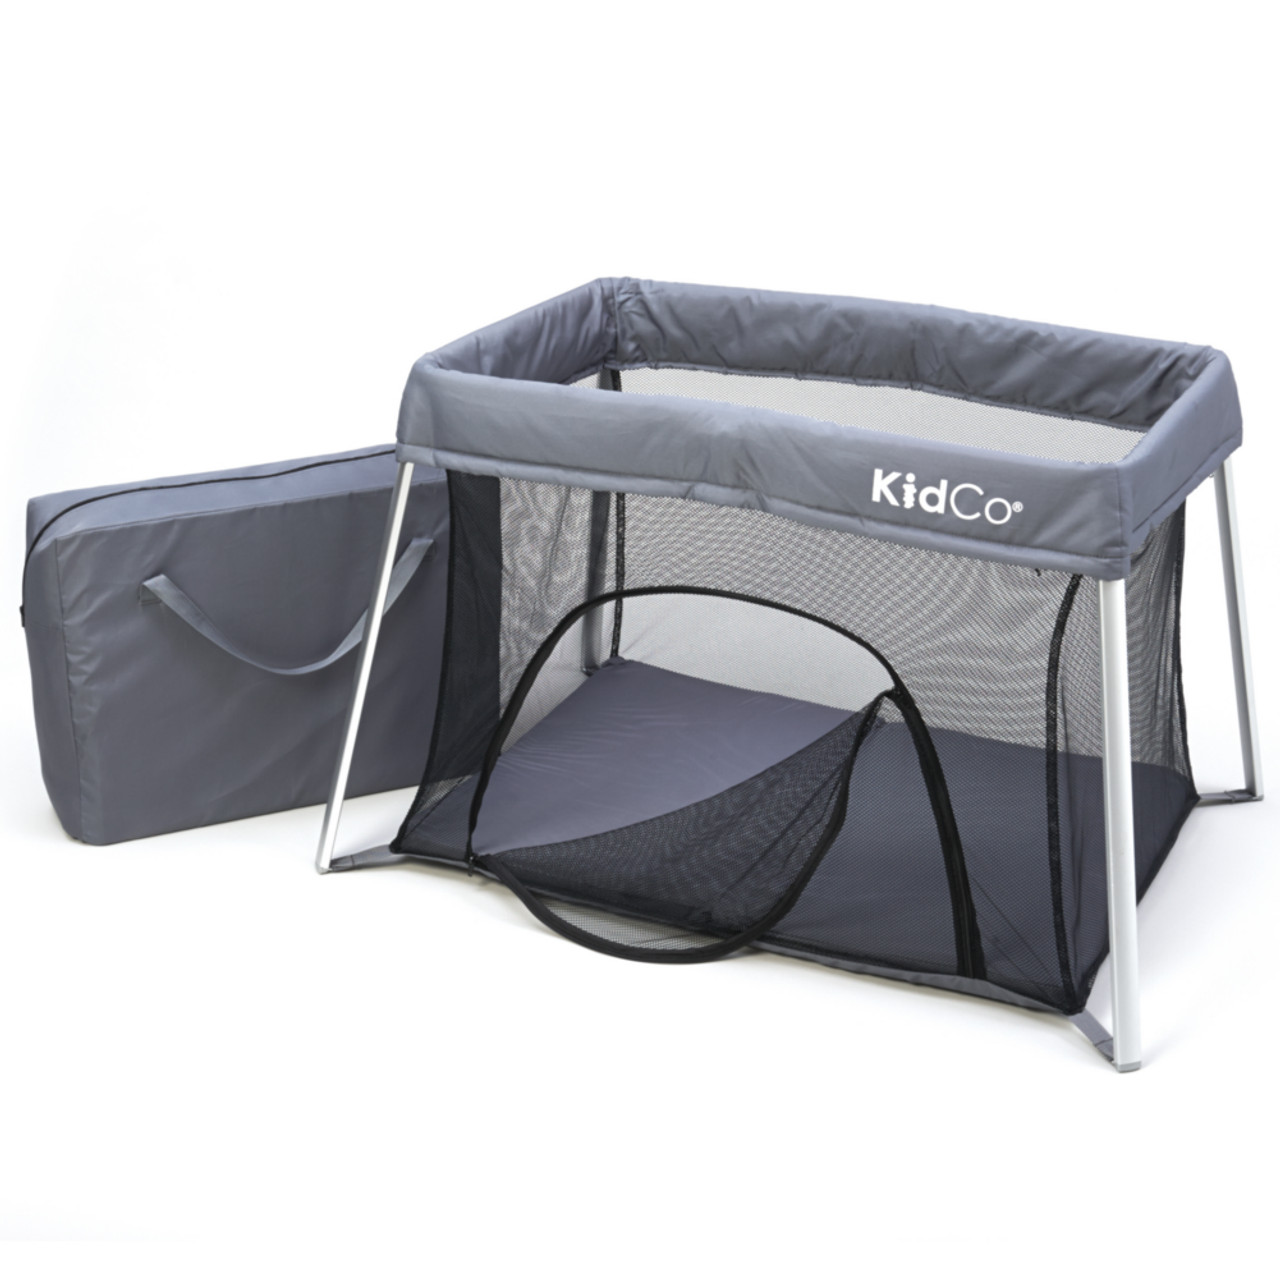 Cranberry Kidco Travel Pod Portable Play Yard